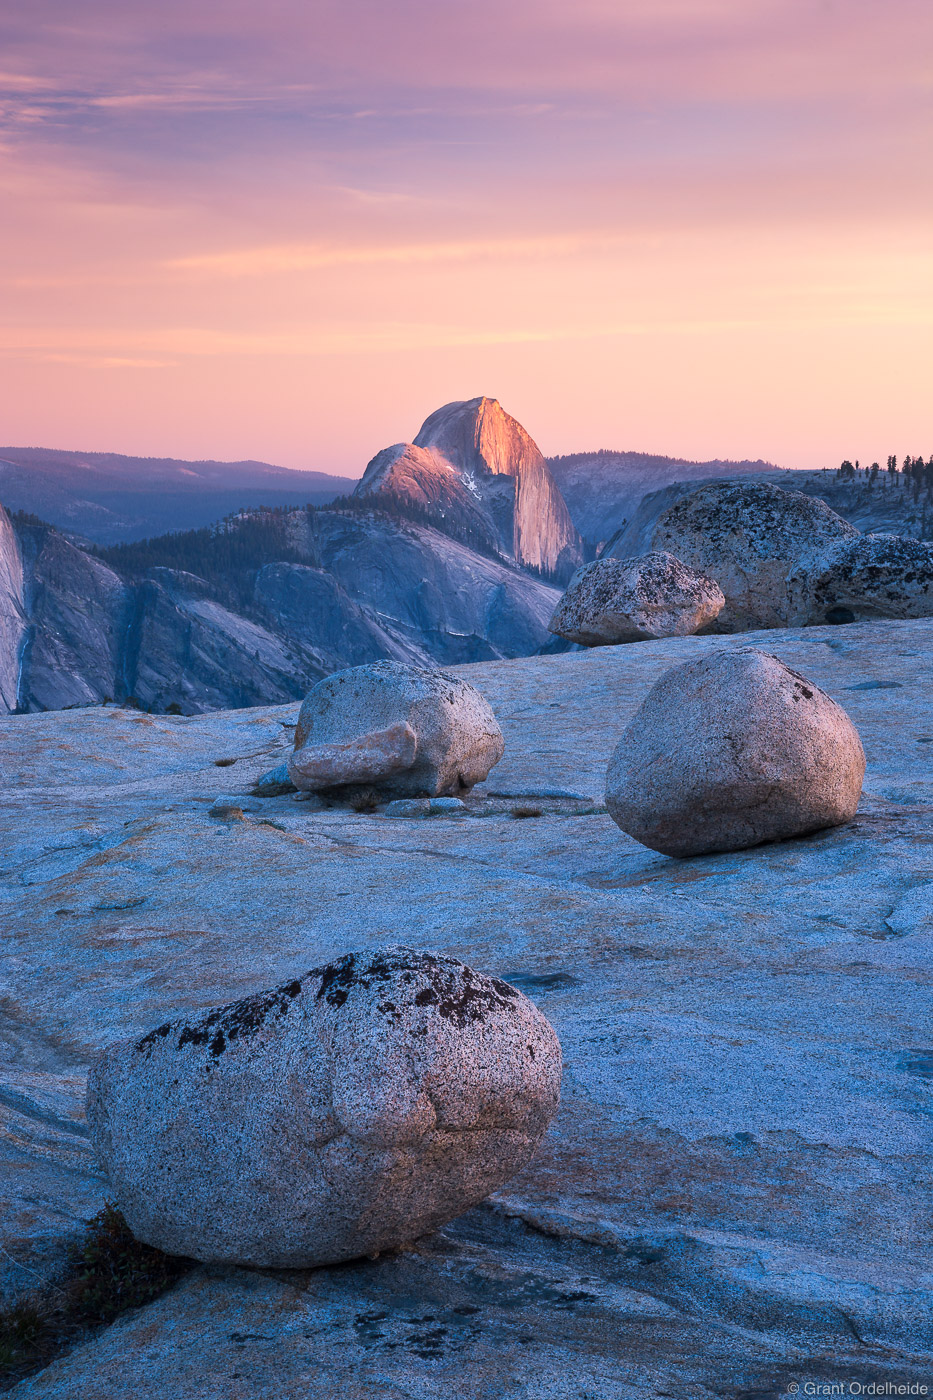 olmstead, sunset, half dome, glacier, erratics, yosemite, national park, california, polished, granite,, photo